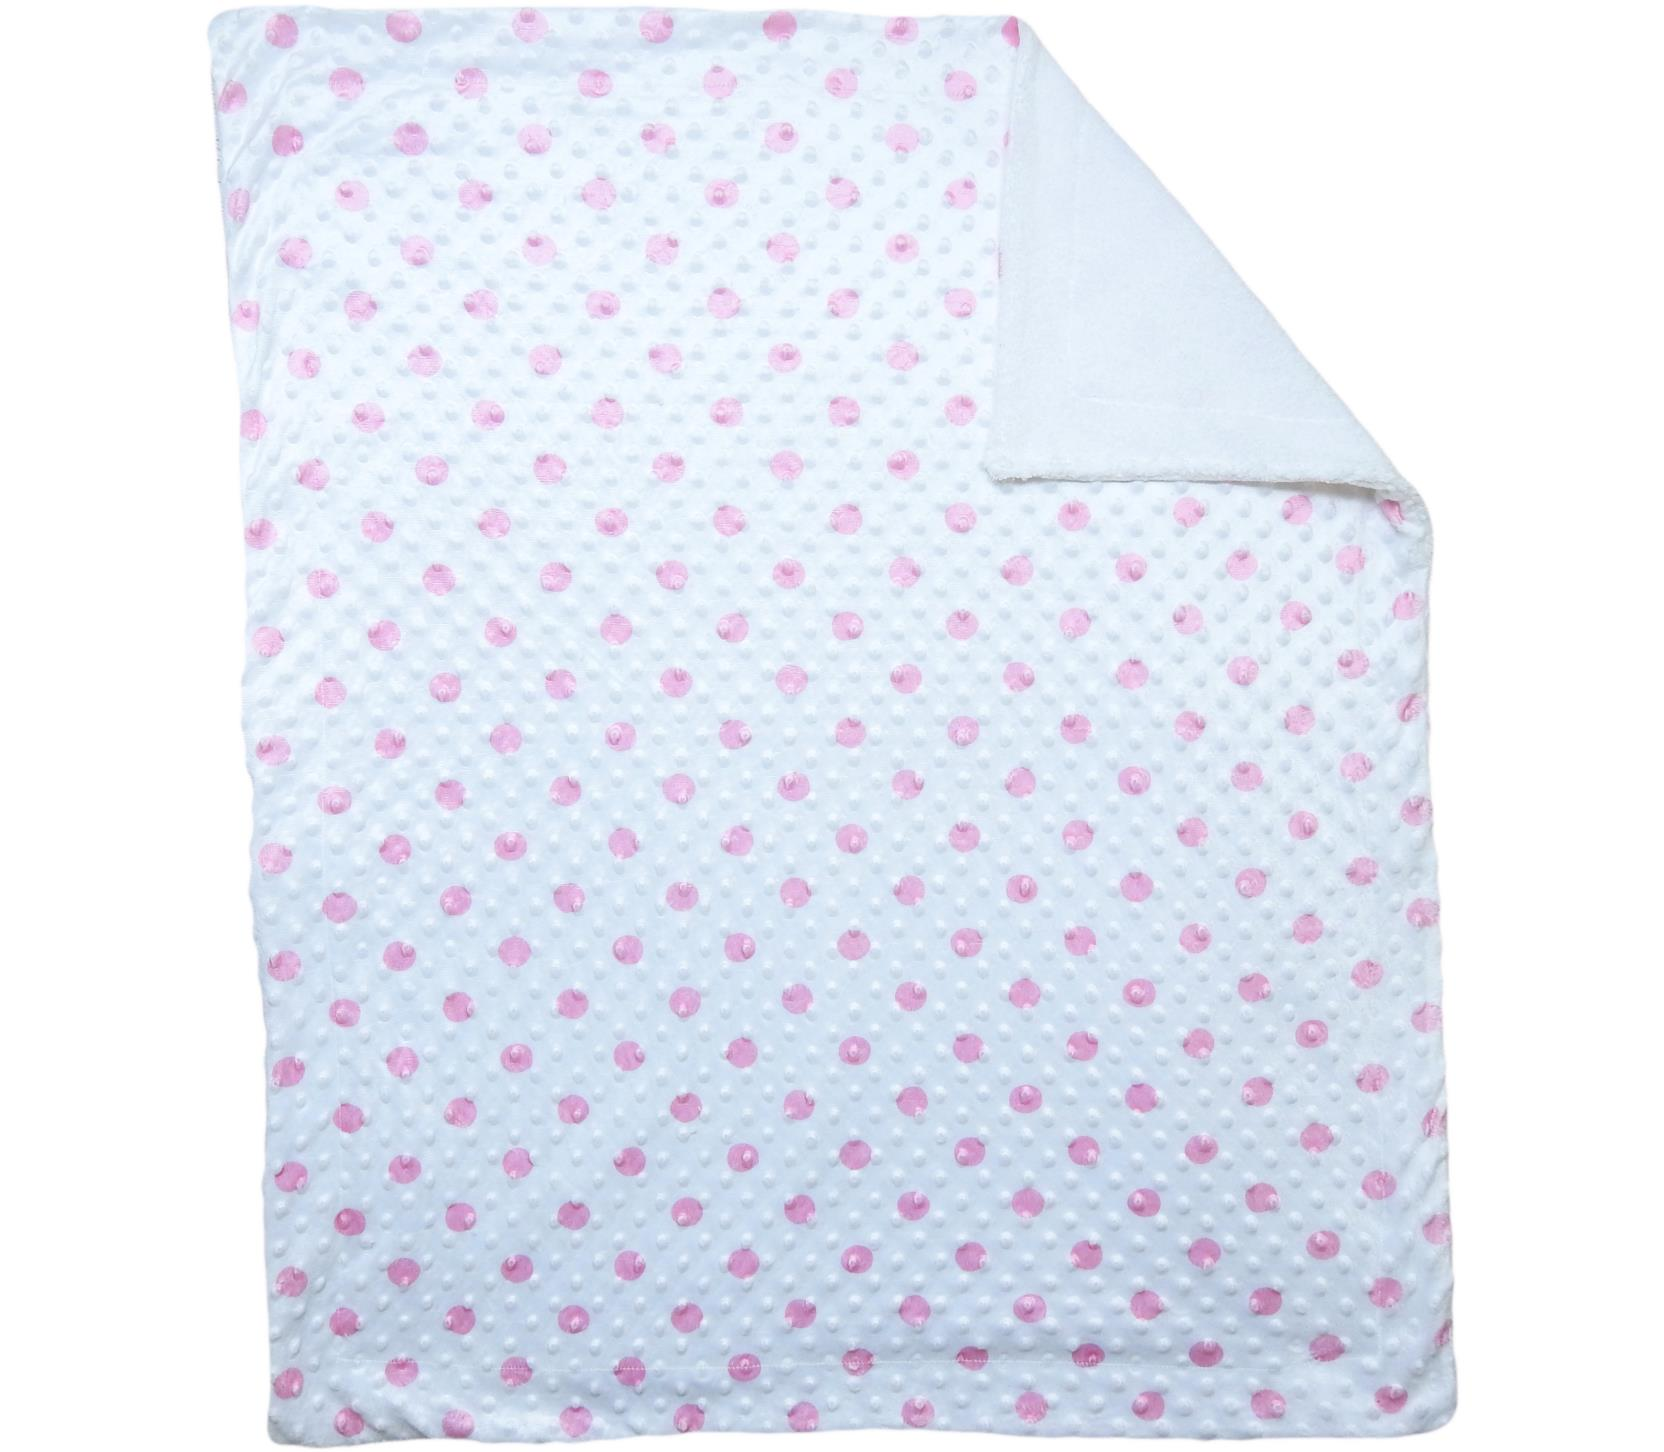 wholesale baby blankets,blankets,polka dots, from the manufacturer at low prices